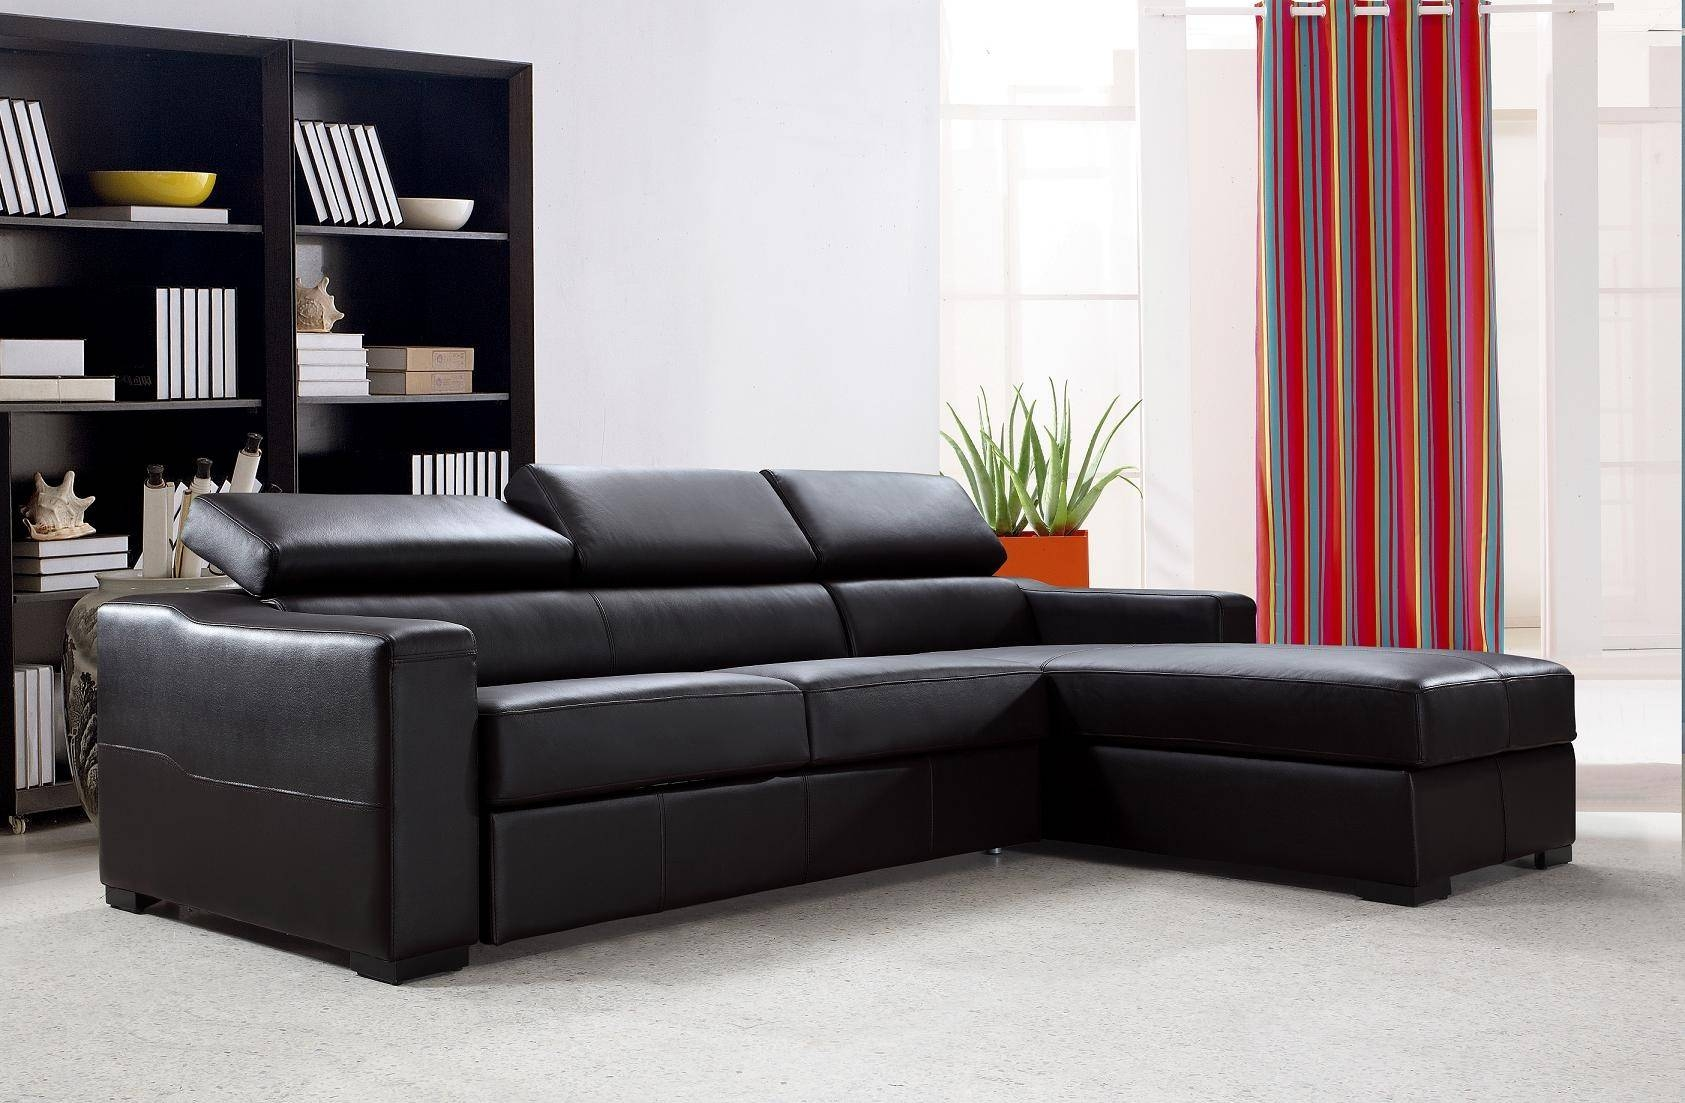 Flip Reversible Espresso Leather Sectional Sofa Bed W/ Storage For Sectional Sofa Bed With Storage (View 6 of 25)